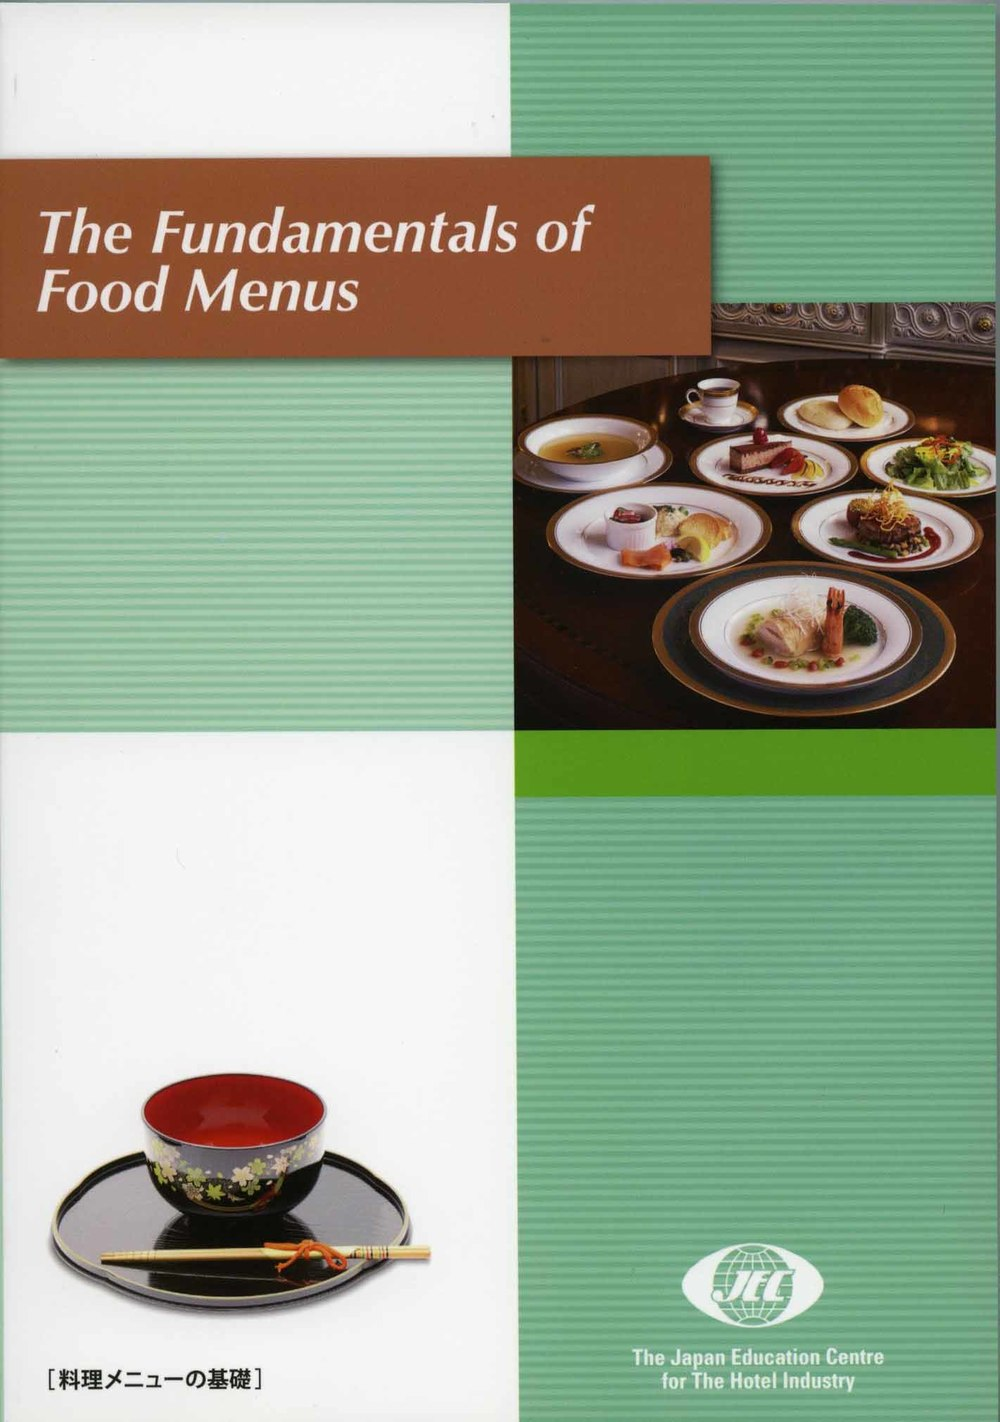 The Fundamentals of Food Menus 料理メニューの基礎